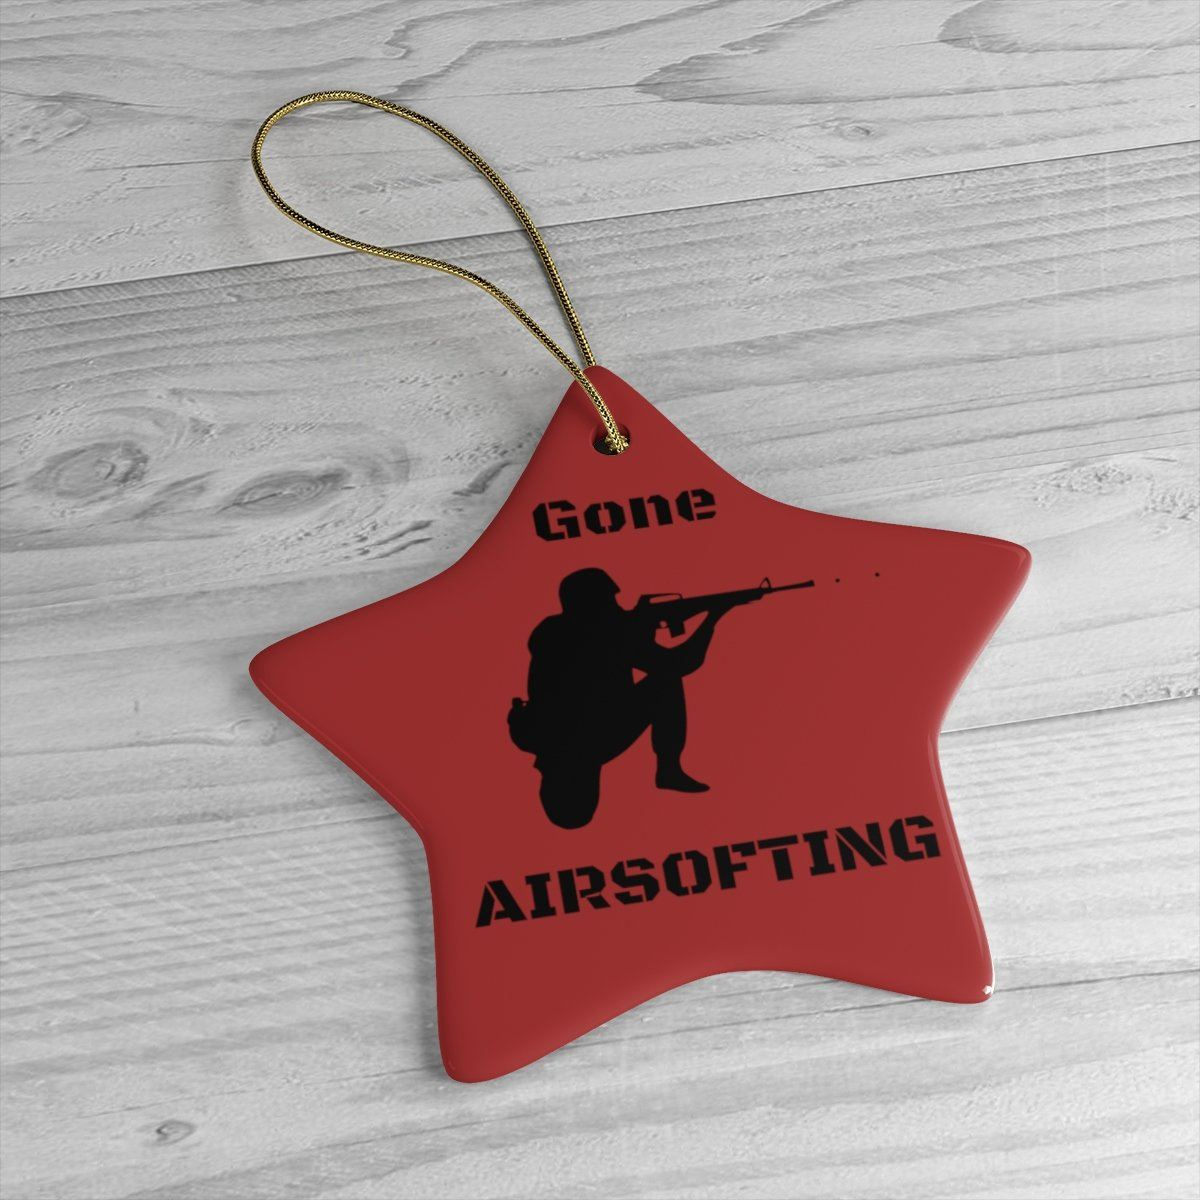 Gone Airsofting NEW Oval Christmas Ceramic Tree Ornament Airsoft Present